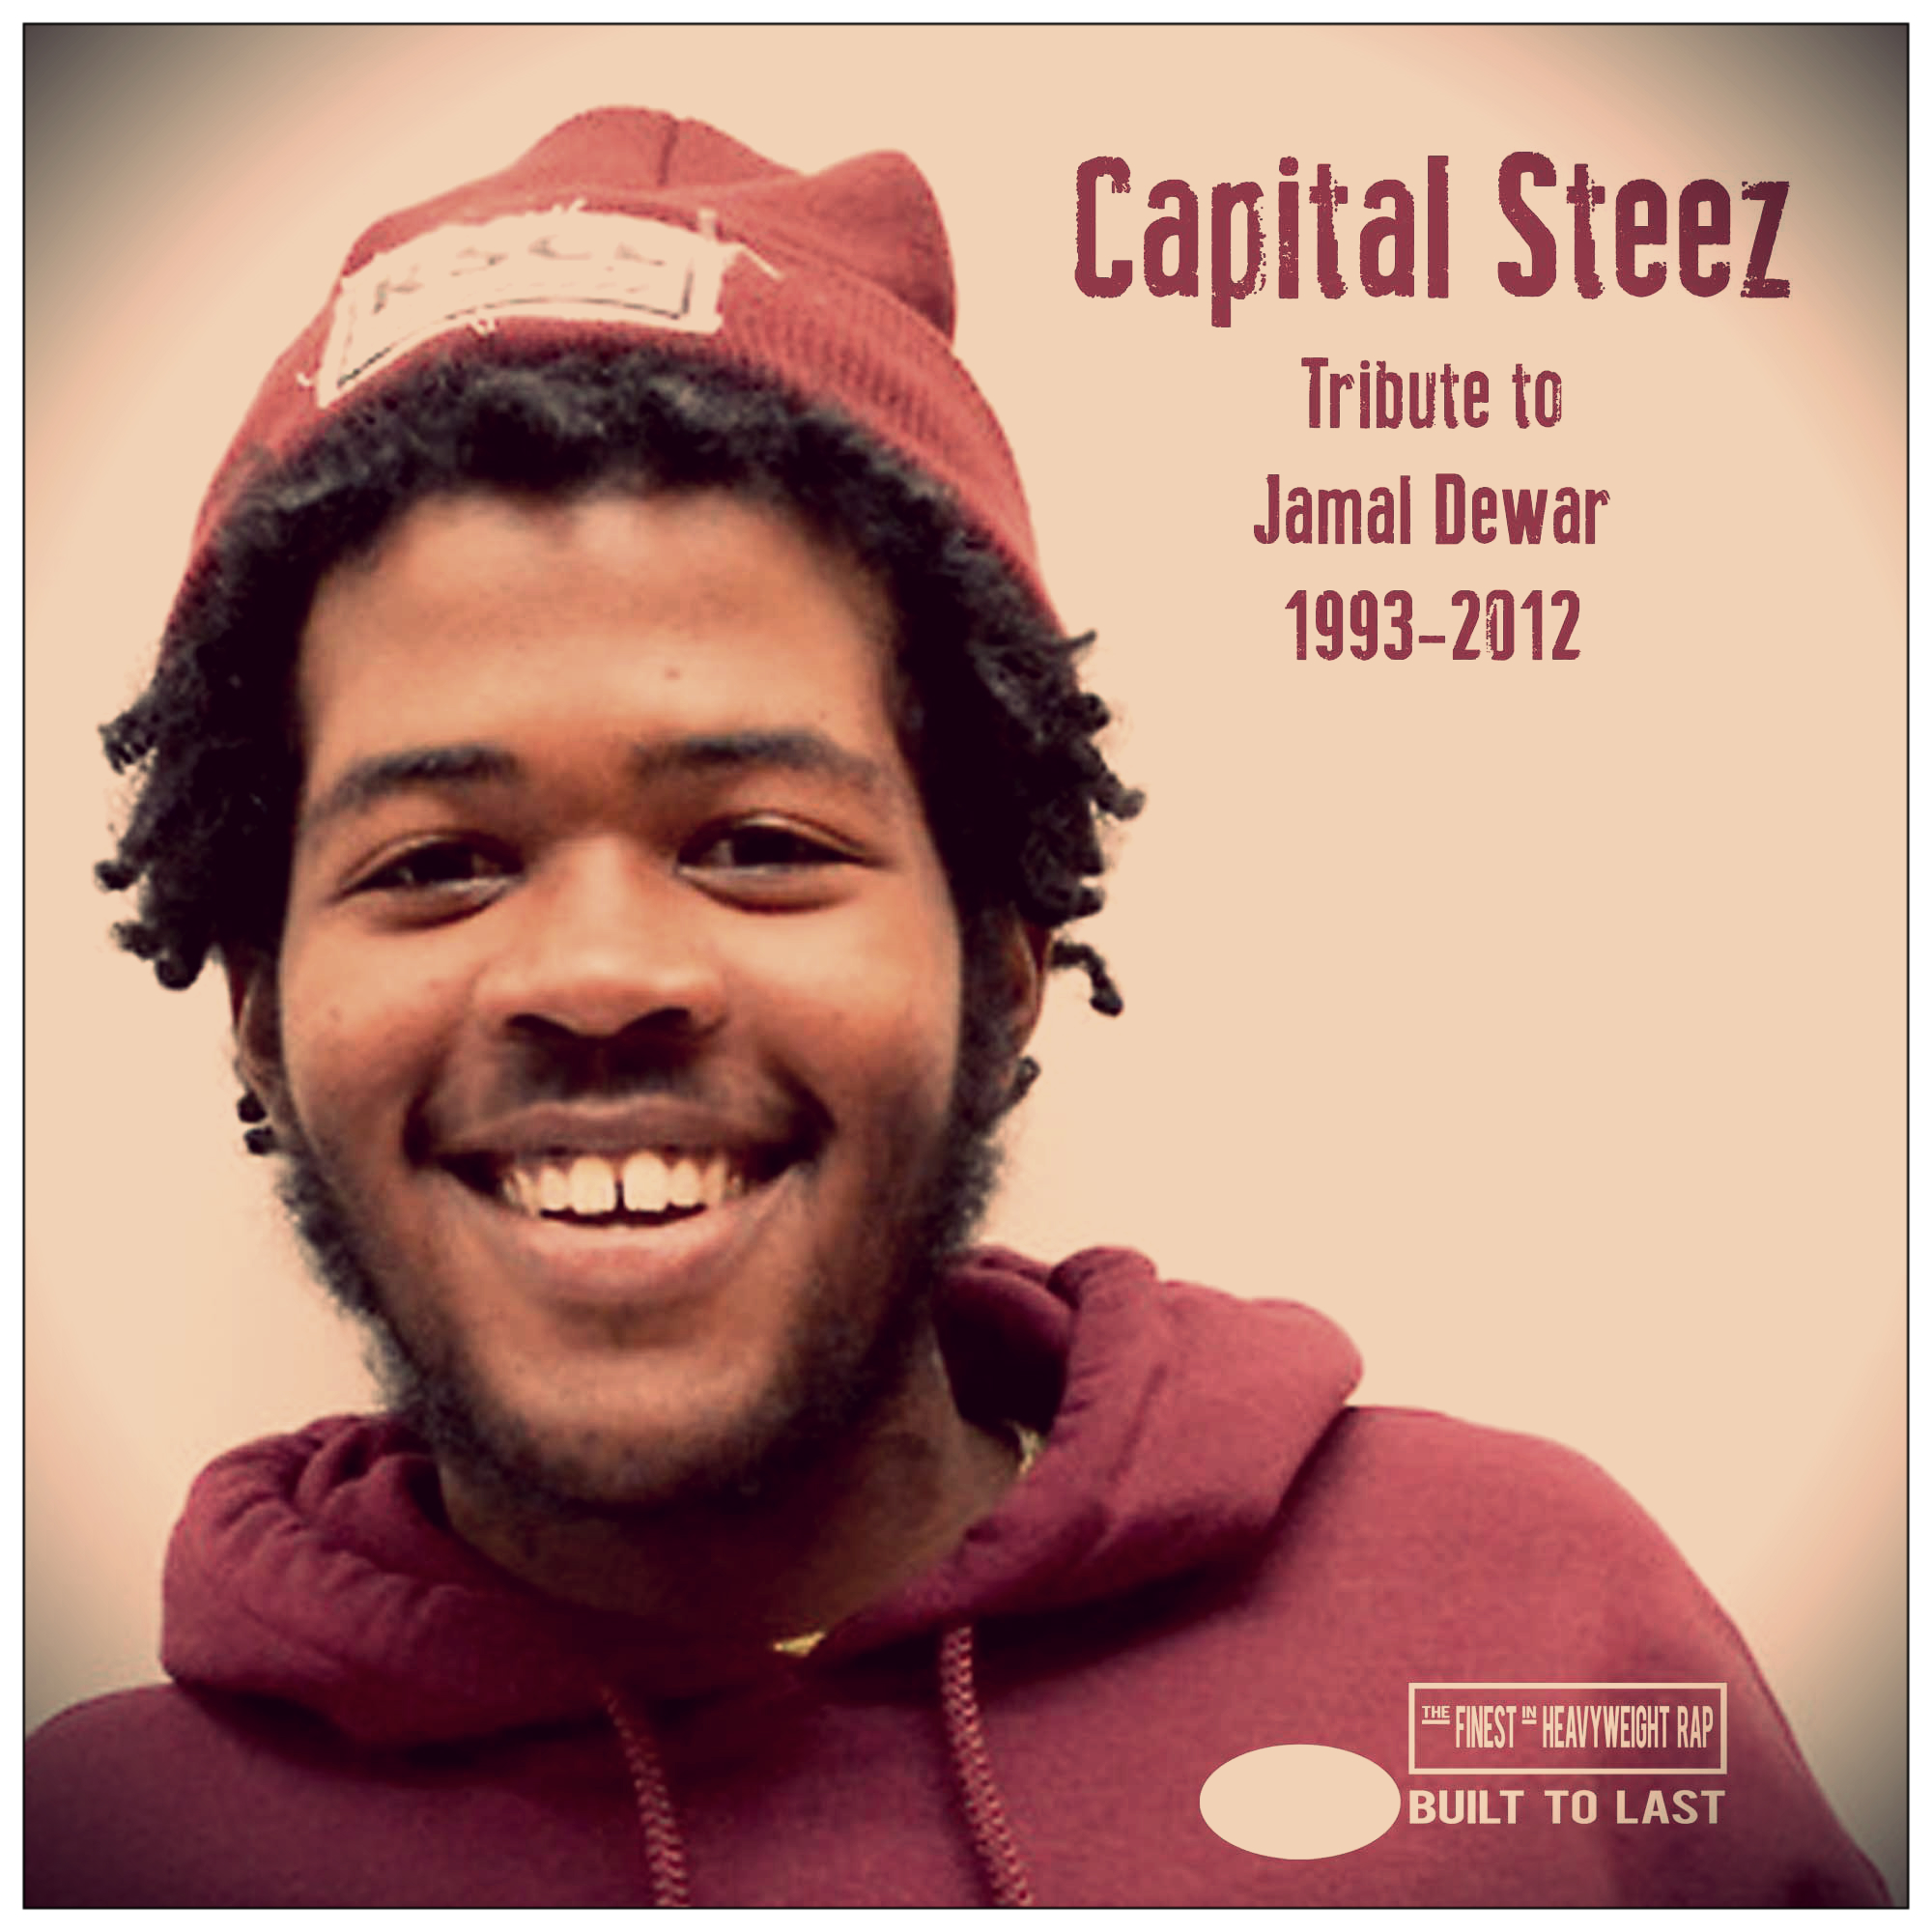 Tribute to CAPITAL STEEZ